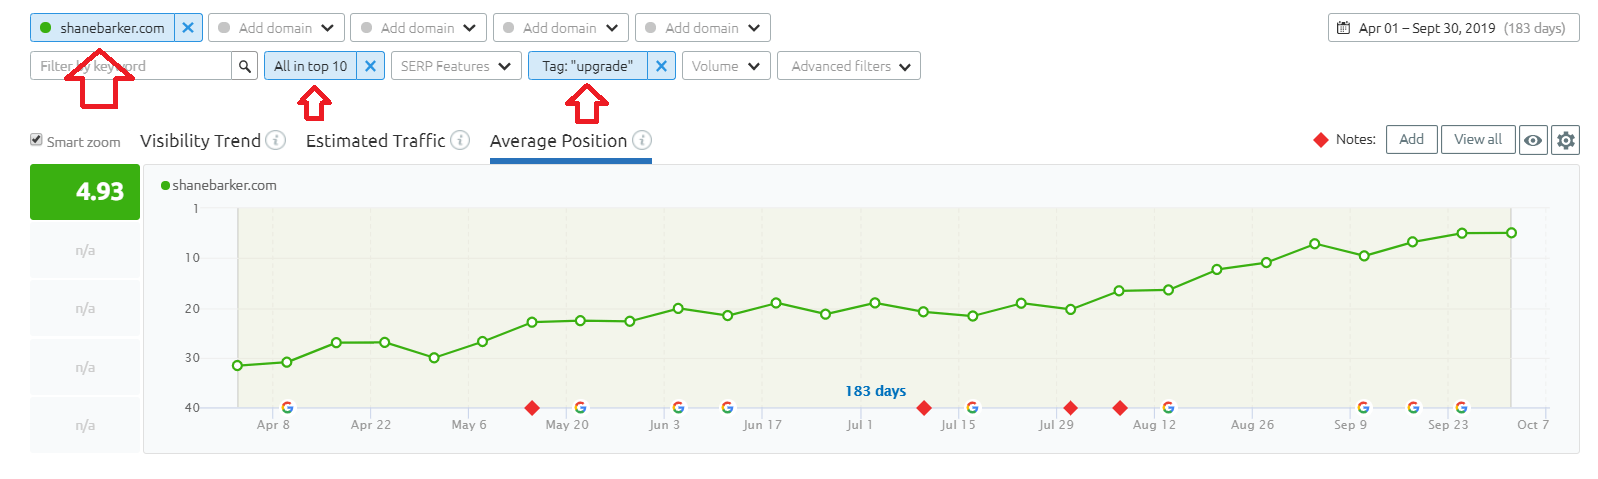 Update Already Published Content SEO keyword Case Study